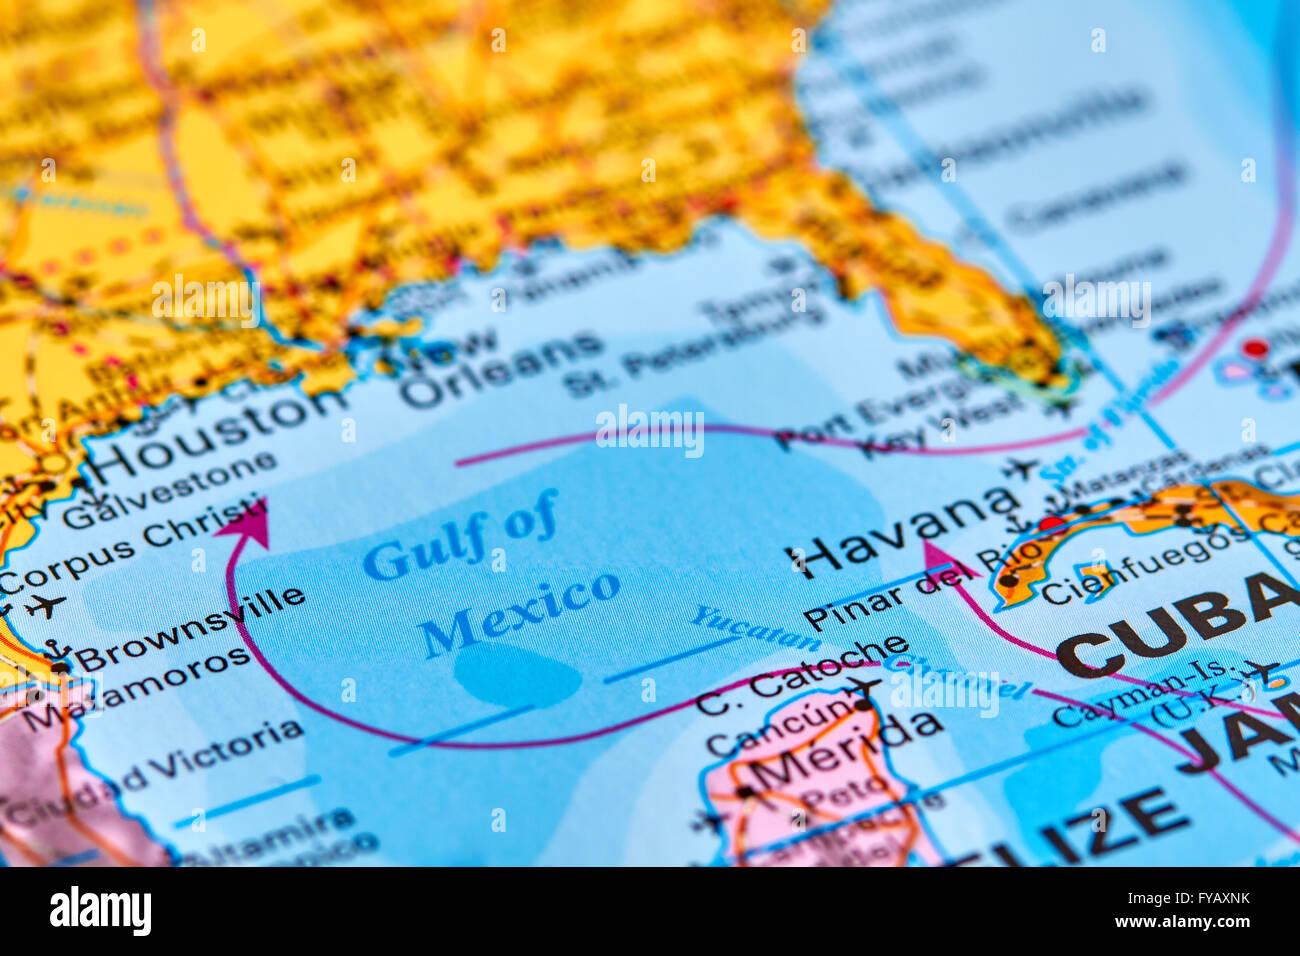 Gulf of Mexico on the World Map Stock Photo Royalty Free Image